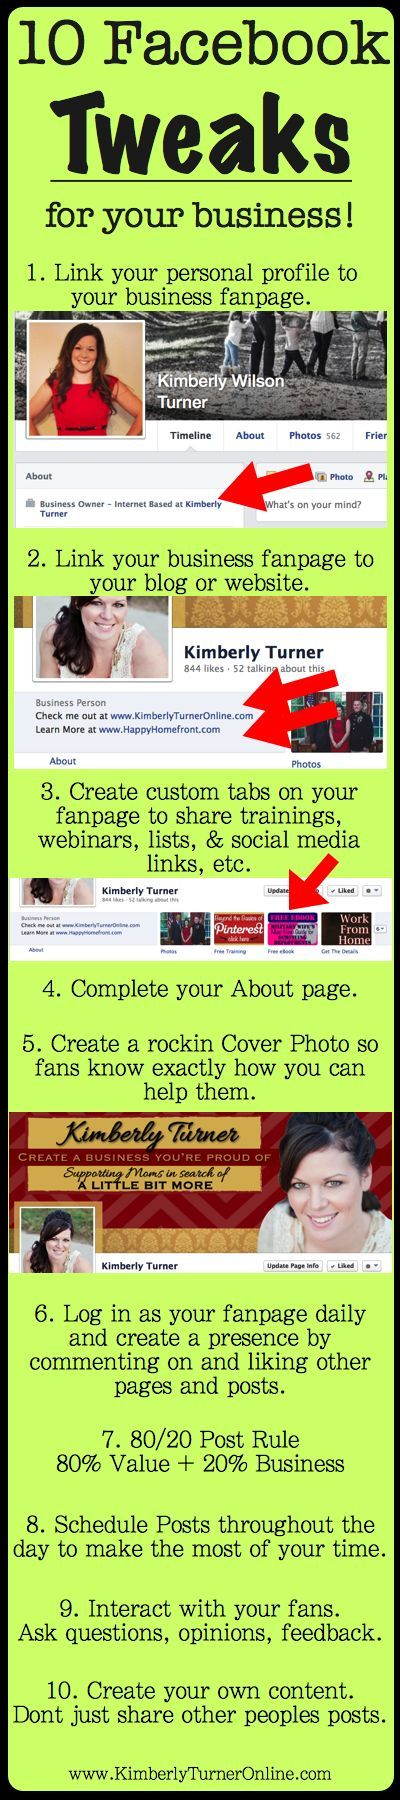 I shared some training last night with my team on how to market your business on facebook. Here are 10 facebook tweaks that anyone can do on facebook to increase their exposure on this social media platform. What other tips do you have for marketing your business or brand on facebook?.